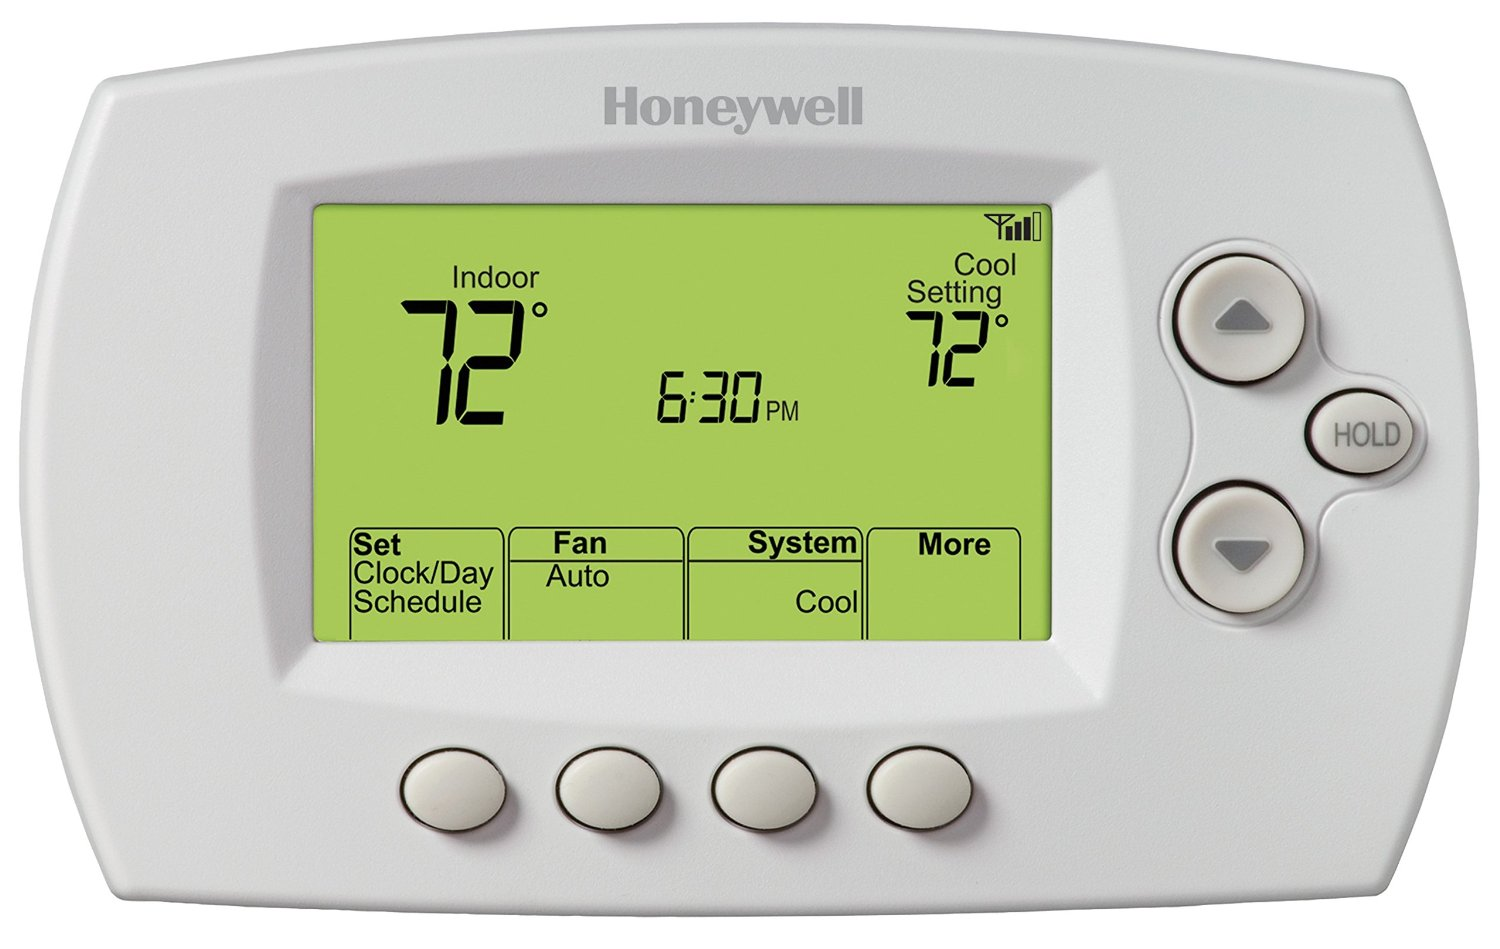 Honeywell_RTH6580WF_budget_friendly_smart_thermostat